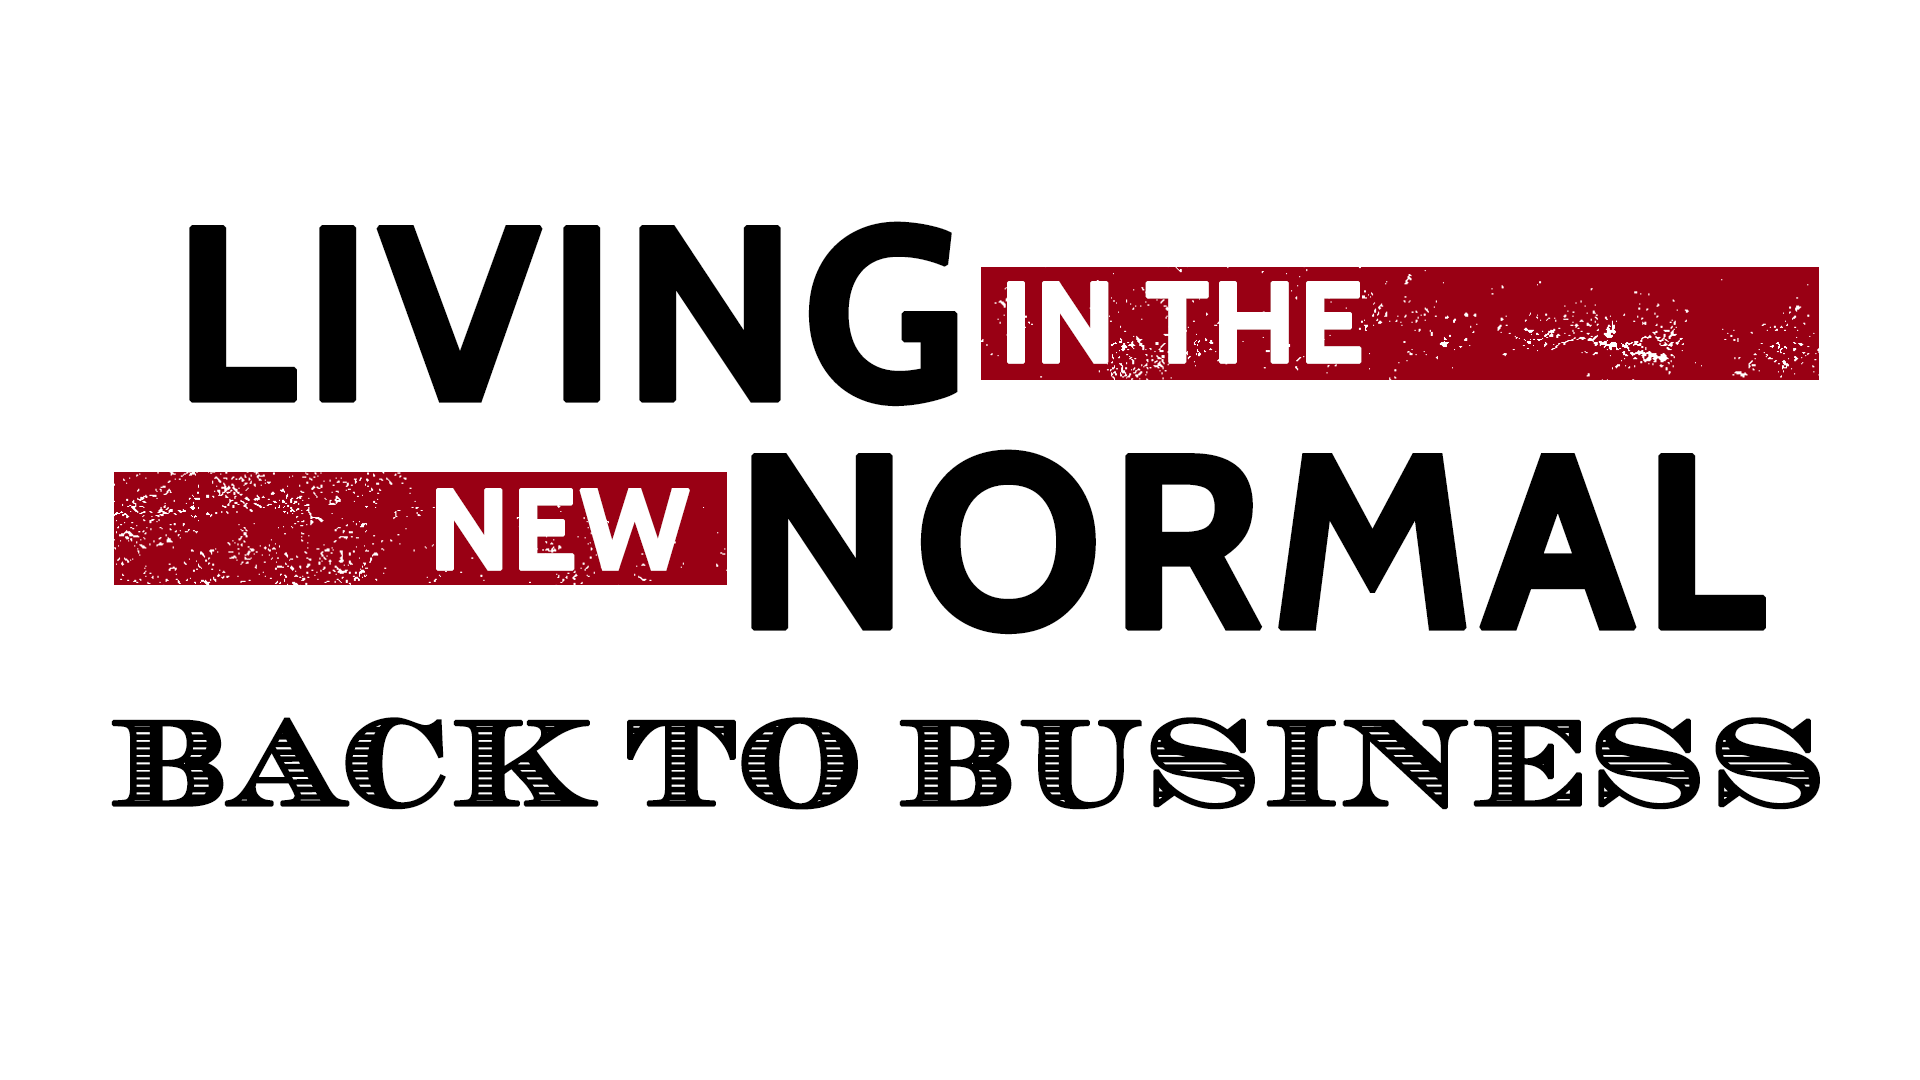 Living in the New Normal: Back to Business